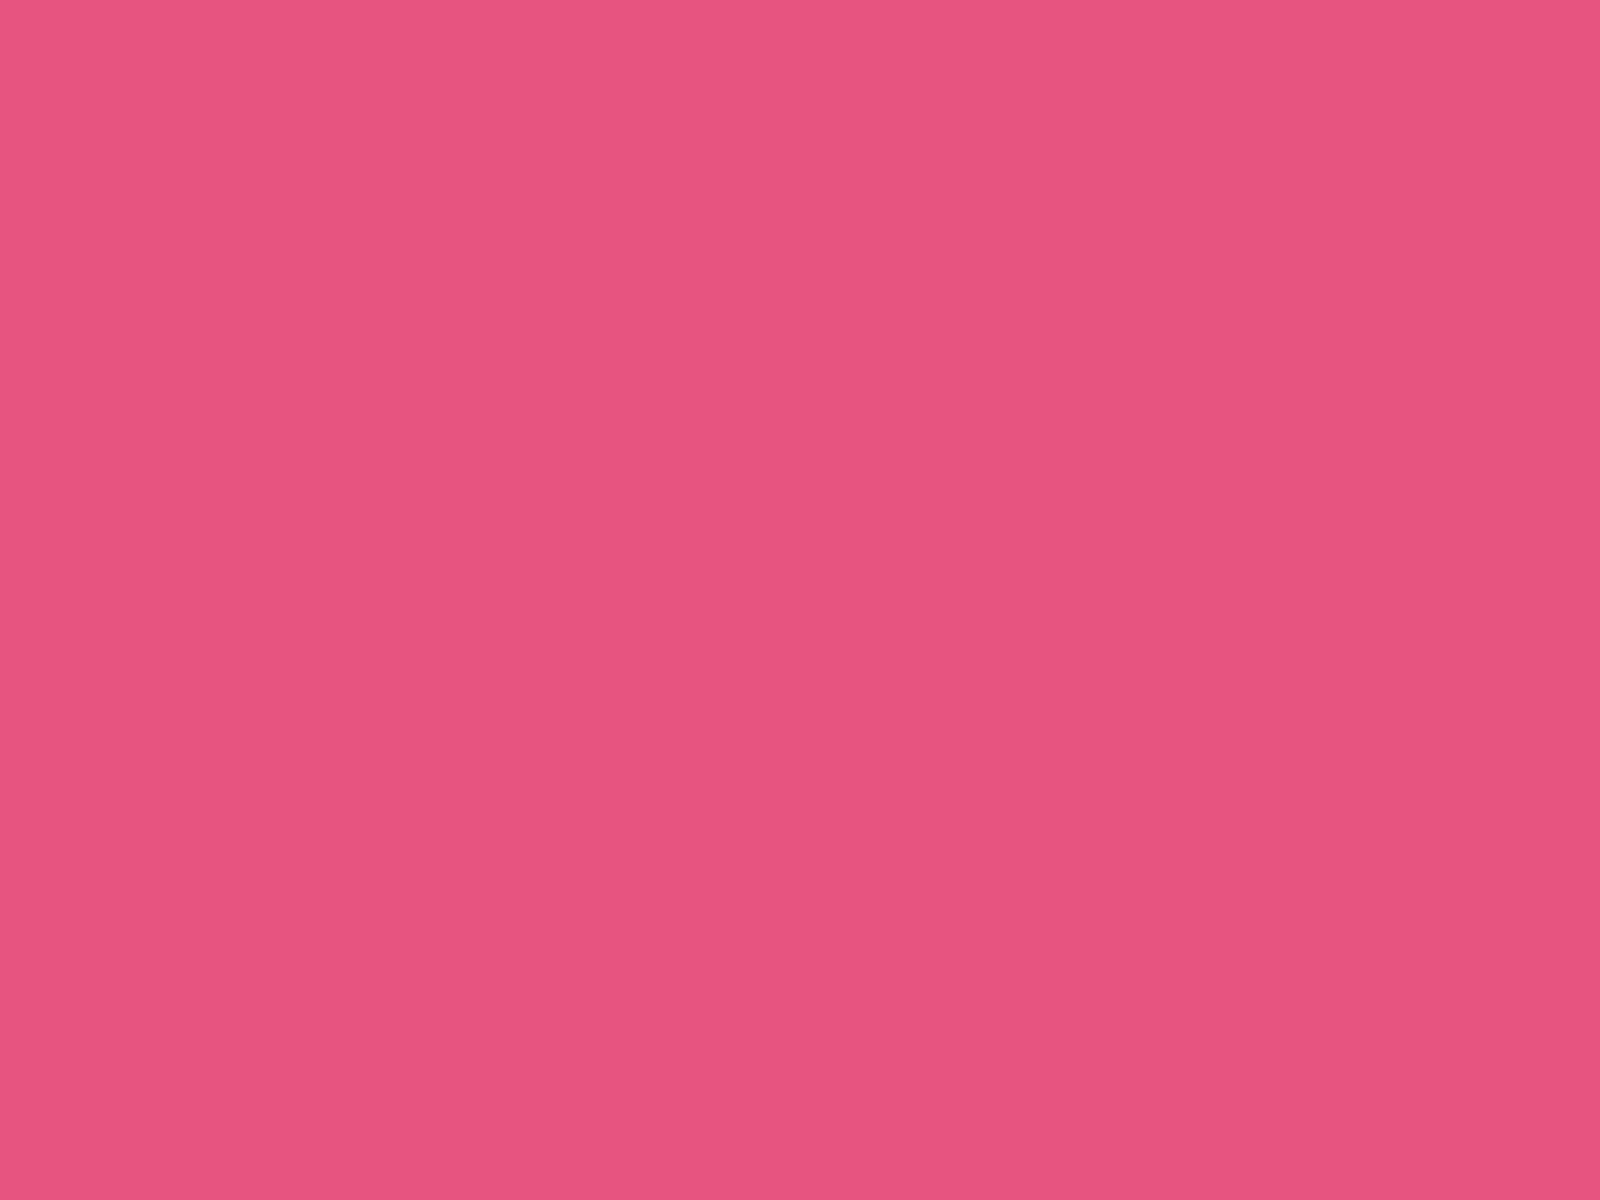 1600x1200 Dark Pink Solid Color Background